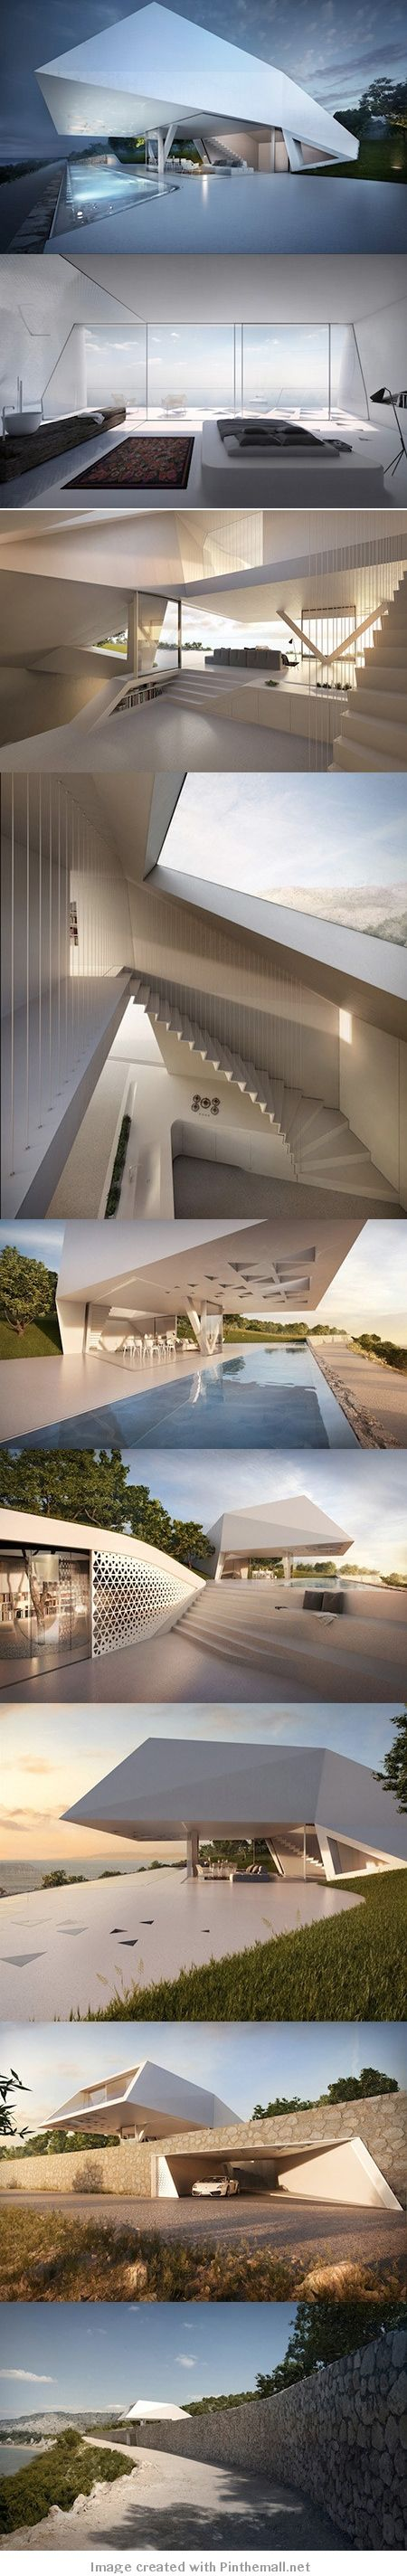 This residence appears to be an extruded prism with a ground level pool that recedes down a steep slope to showcase a unique staircase and sunken spaces all with amazing ocean views from Rhodes, Greece. [Villa F | Hornung and Jacobi Architecture of Germany]